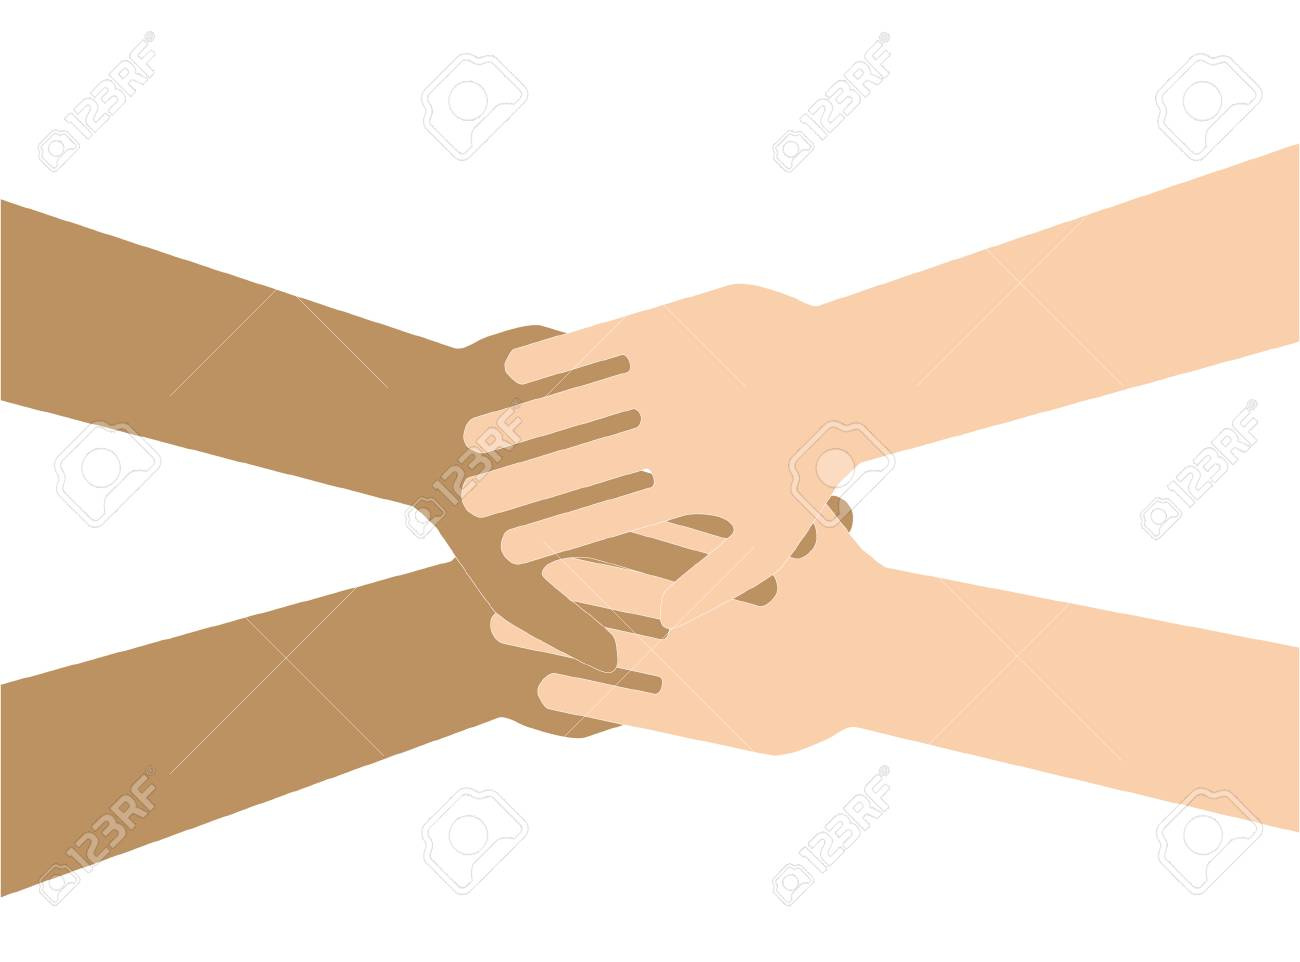 Team Symbol Hands Of All The Peoples Family Friendship Vector Royalty Free Cliparts Vectors And Stock Illustration Image 76325295